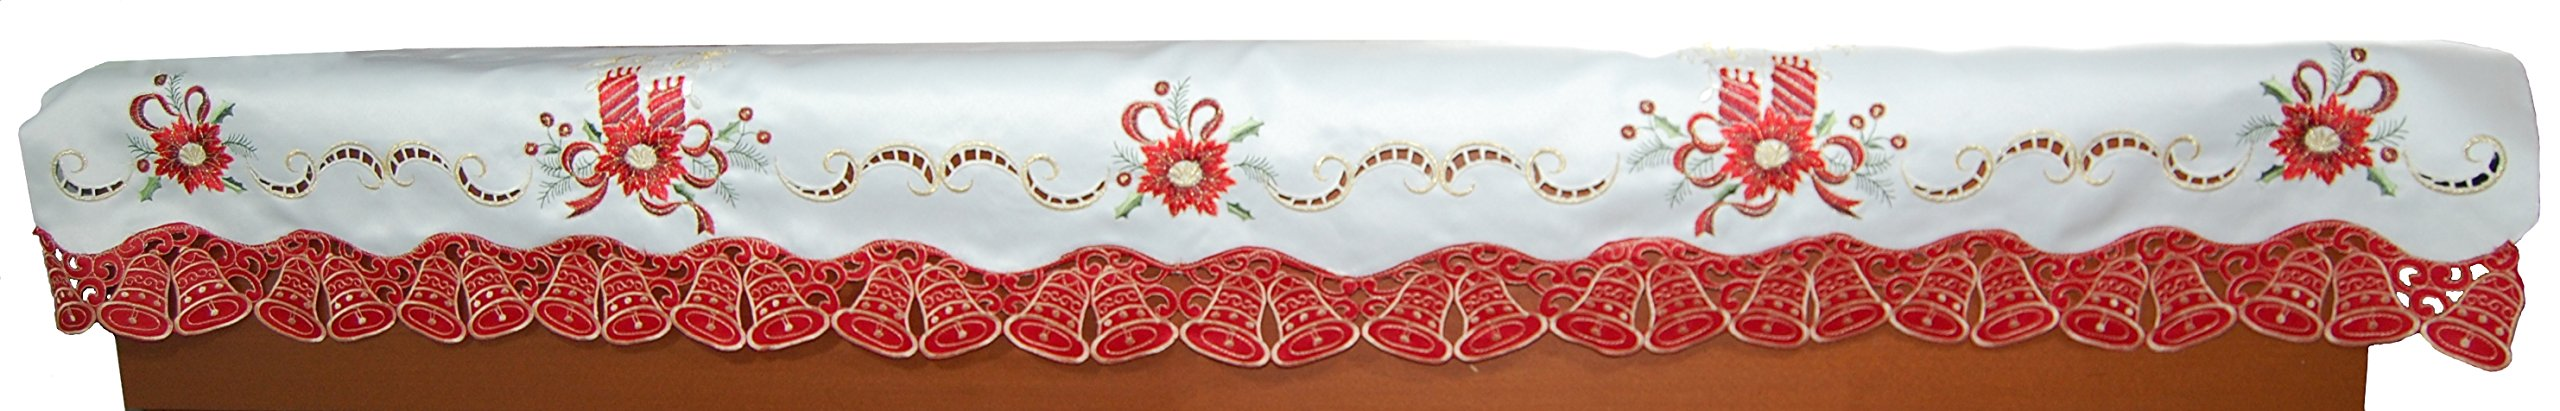 EcoSol Designs Embroidered Christmas Bells (14''x68'', Red White Gold) Fireplace Mantel Scarf/Window Valance